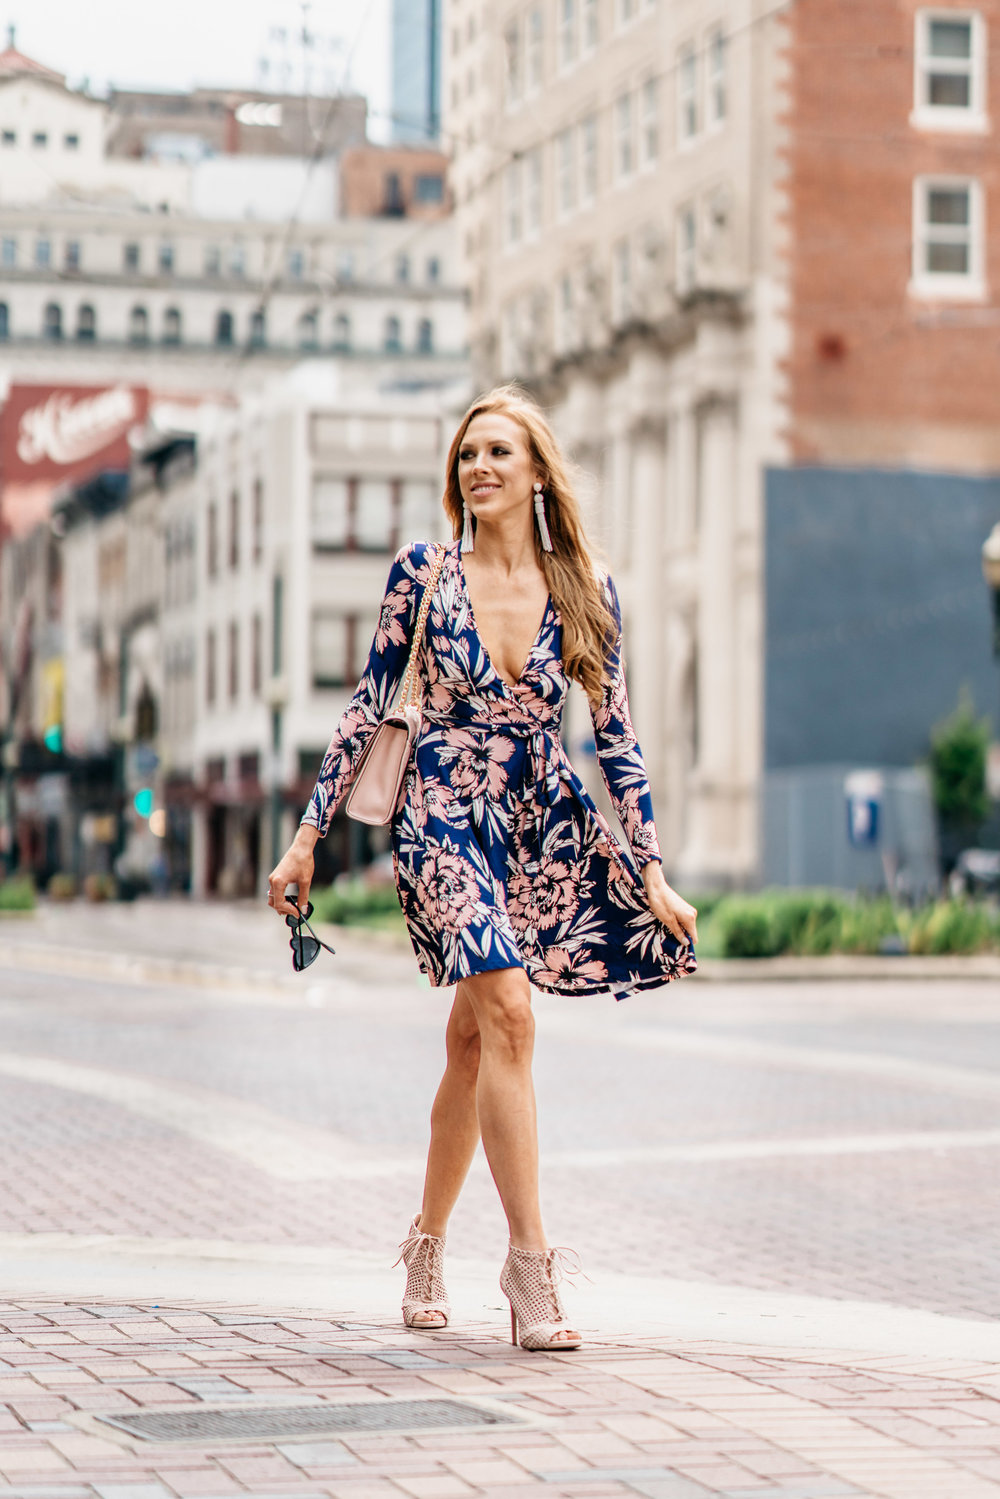 britny_Downtown(10of25).jpg